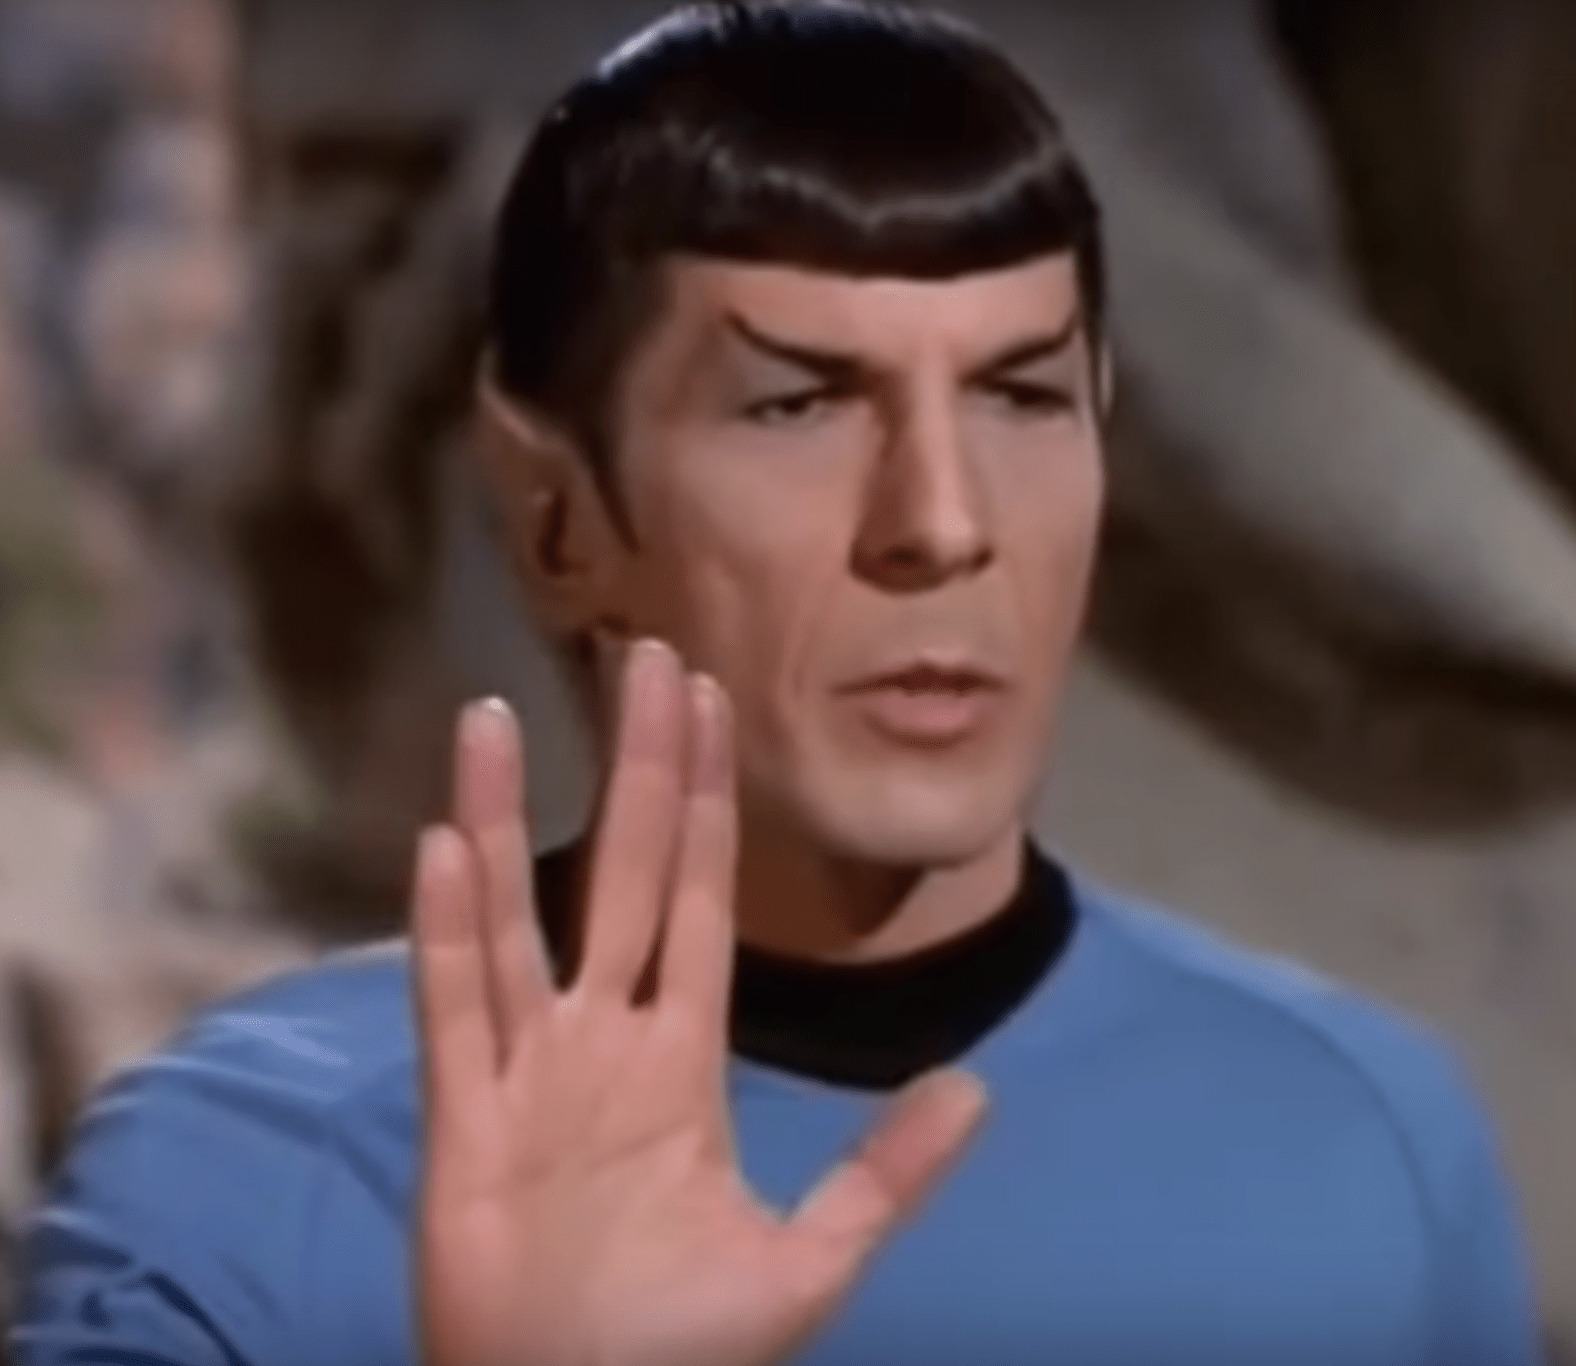 The Vulcan greeting is popular with Star Trek fans. (Image: YouTube/Screenshot)